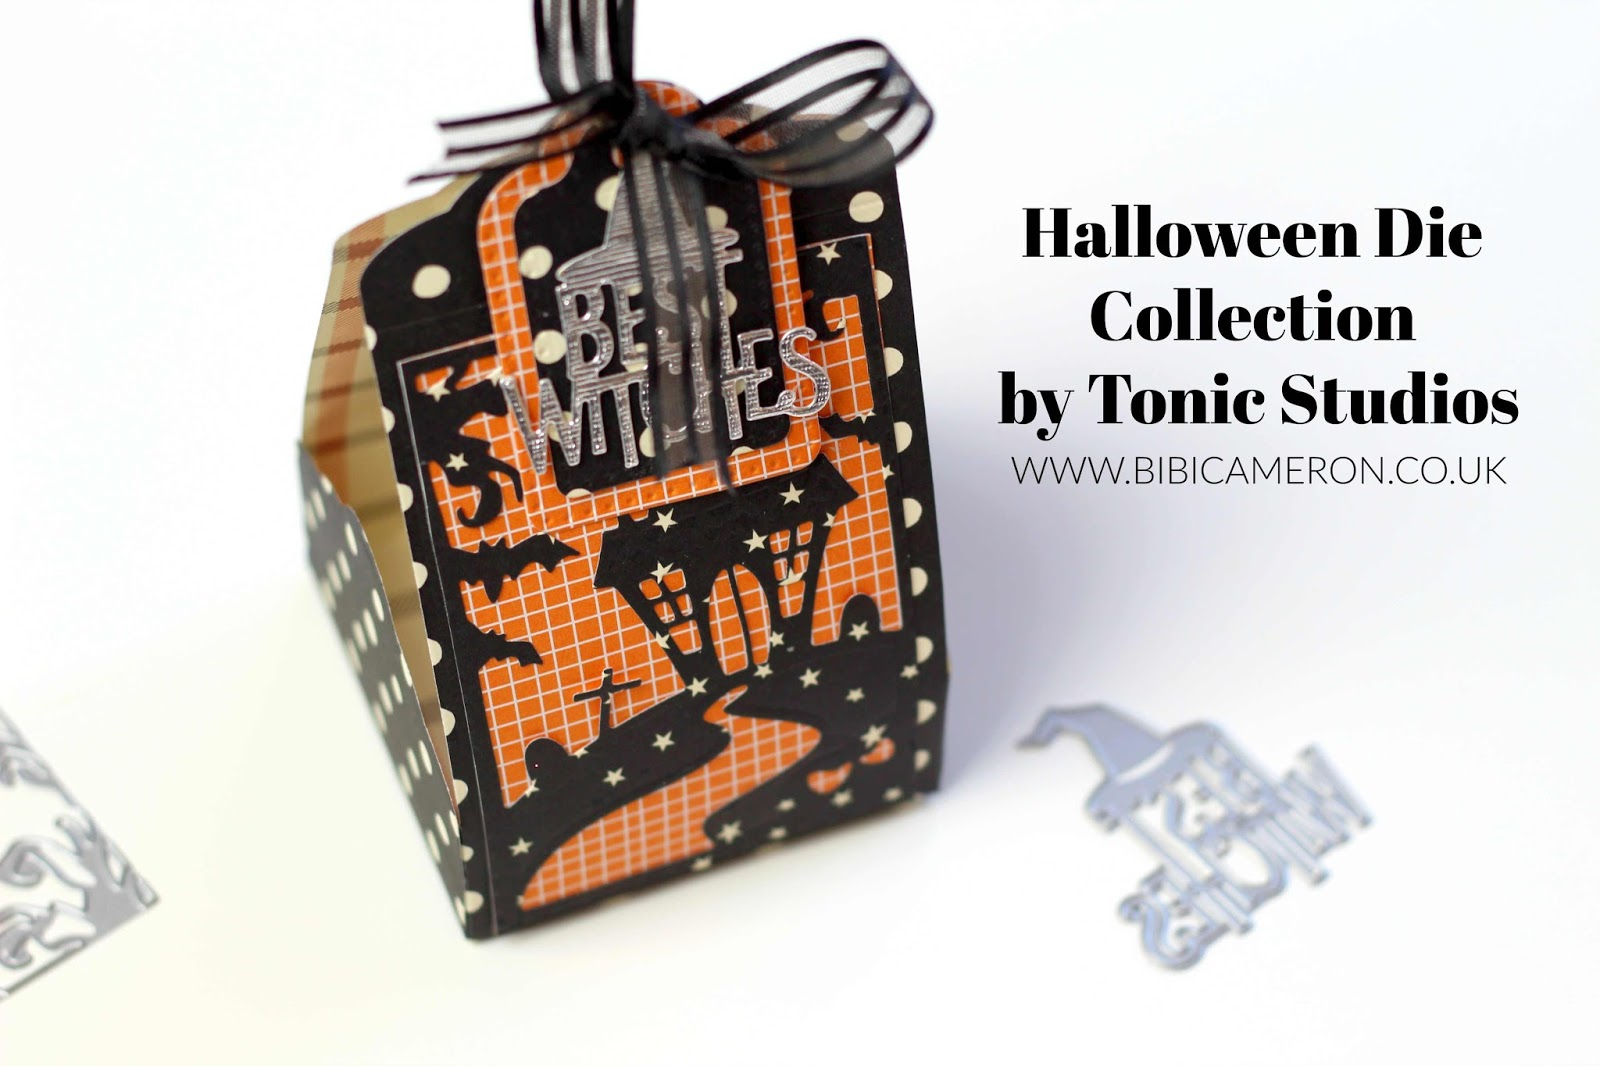 4 packaging ideas with Halloween dies by Tonic Studios